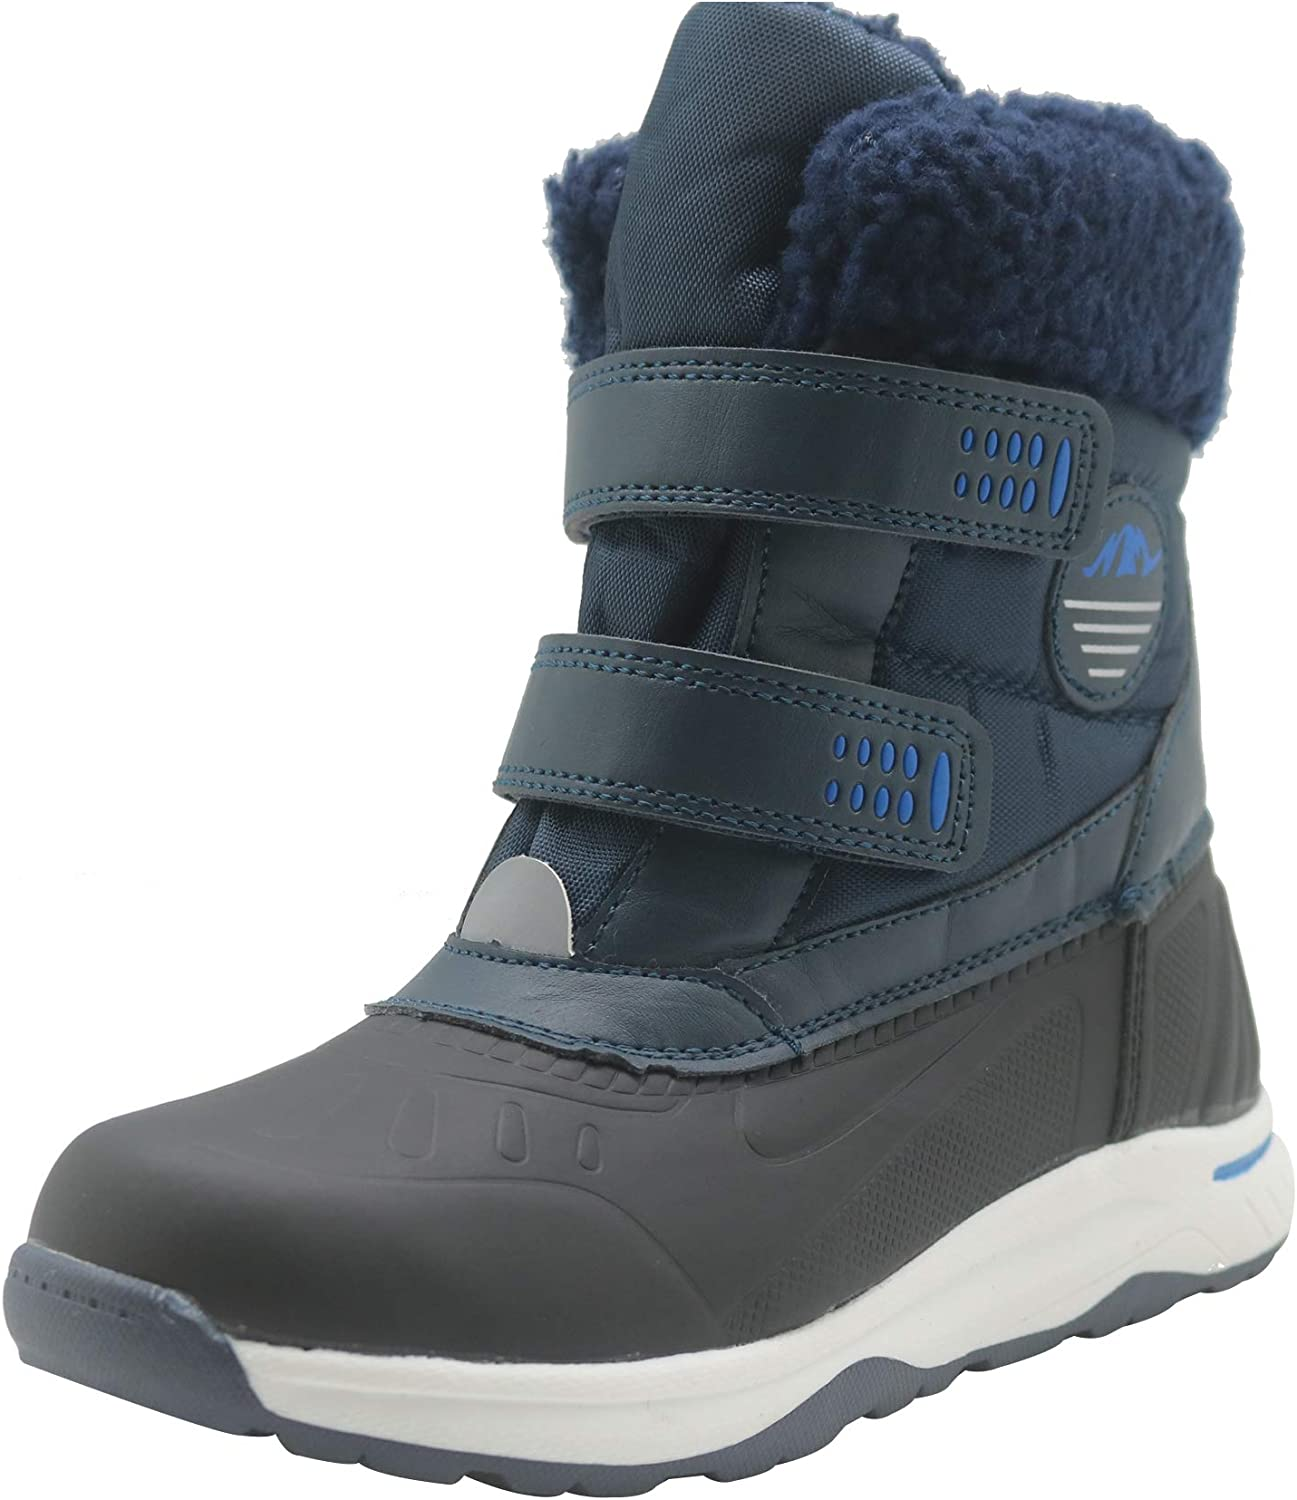 Opening large release sale Ahannie Boys Girls Frosty Winter Boot Toddler Kids Little Gorgeous Snow